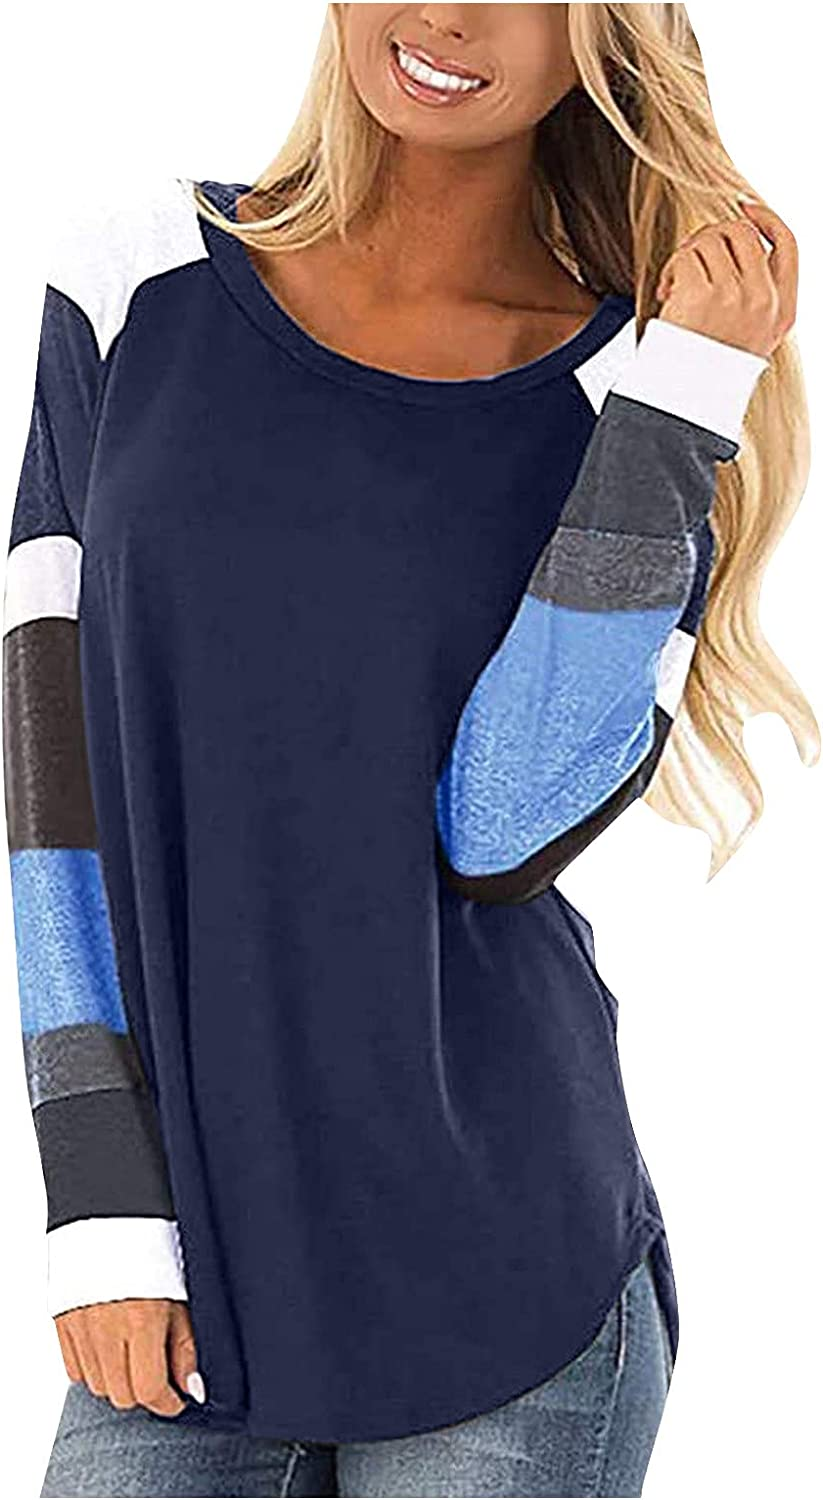 Kaitobe Womens Color Block Pullover, Women's Round Neck Causal Long Sleeve Tops Loose Soft Striped Tunic Blouse Tops